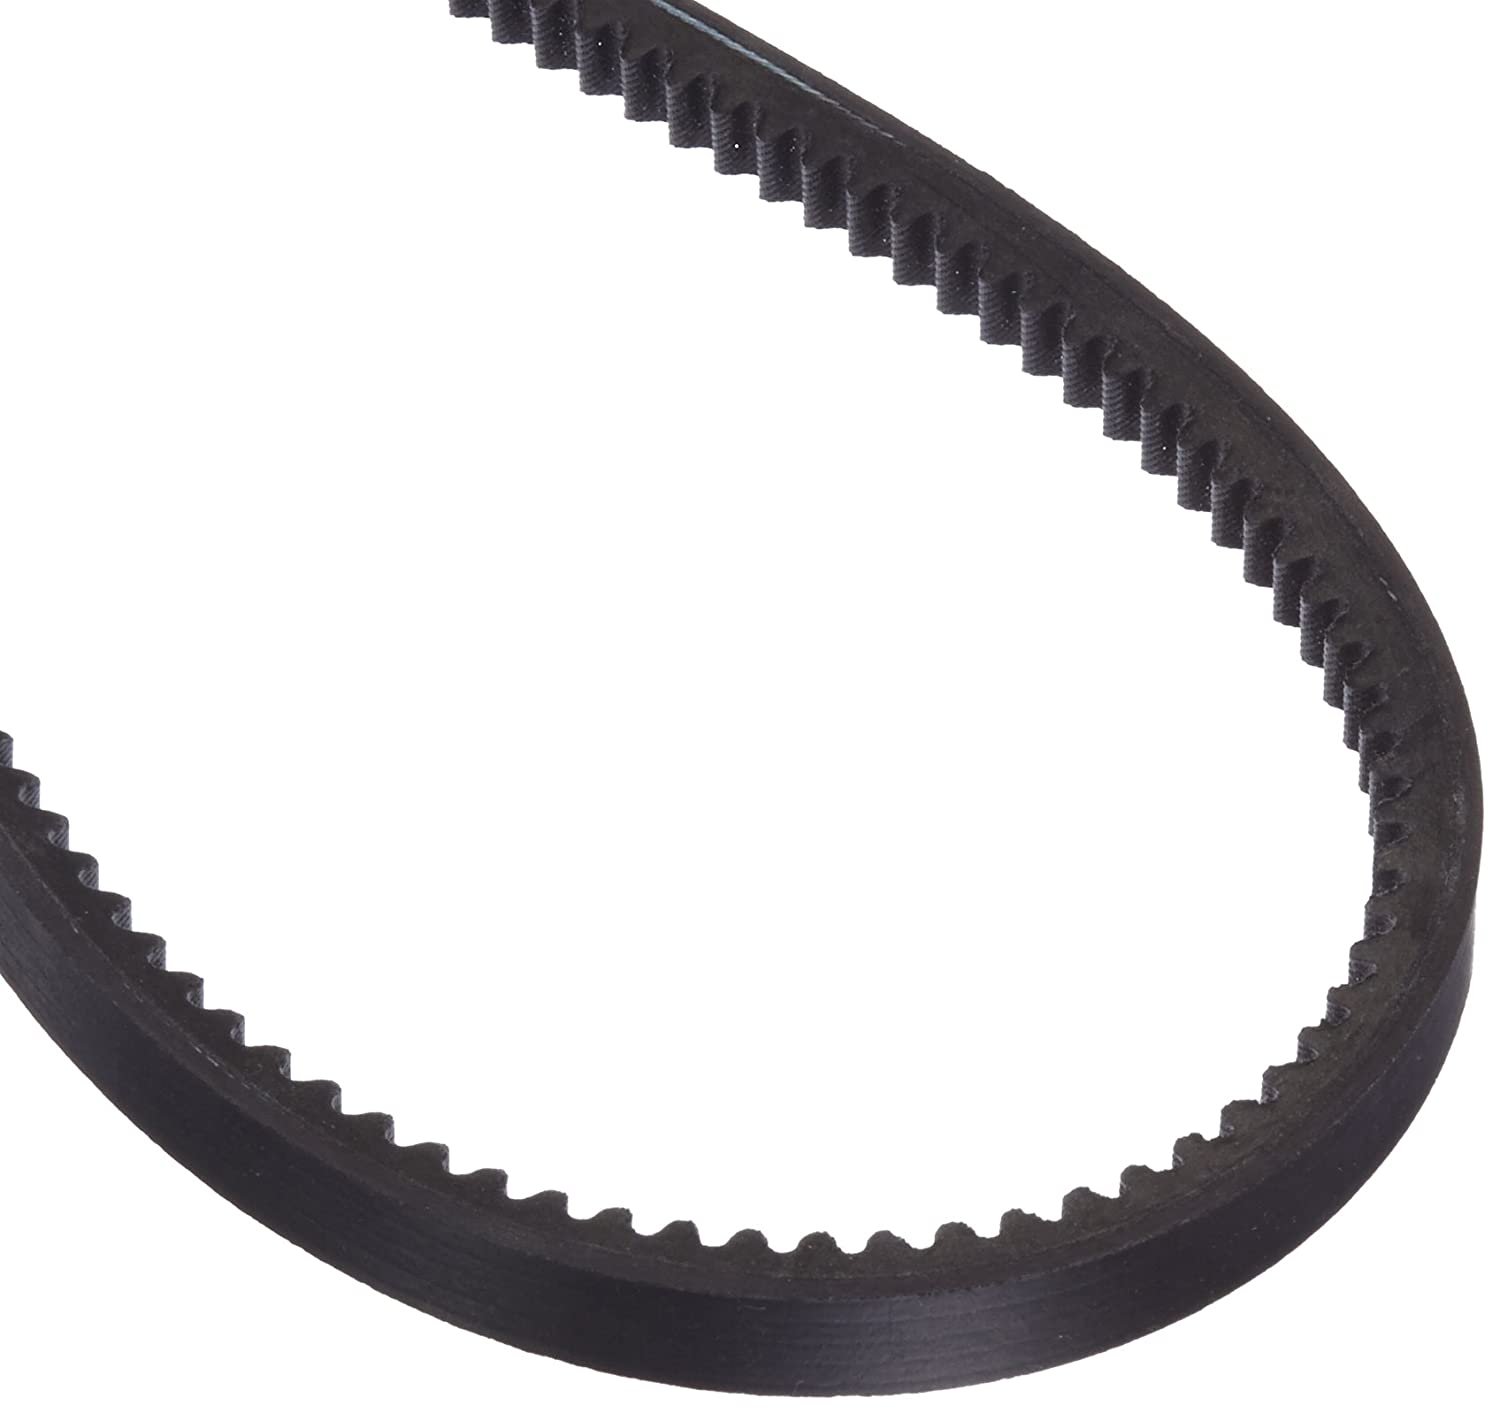 Gates BX42 Tri-Power Belt, BX Section, BX42 Size, 21/32' Width, 13/32' Height, 45' Outside Circumference 21/32 Width 13/32 Height 45 Outside Circumference 90132042